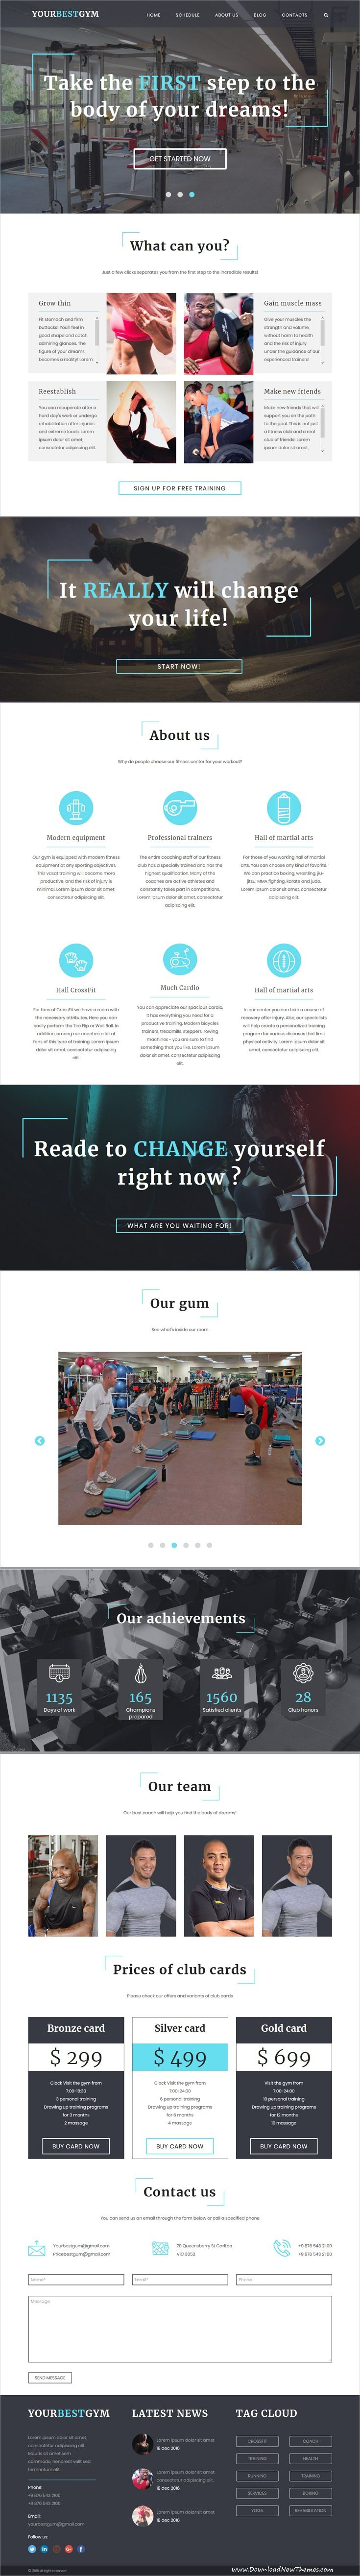 Your Best Gym - HTML5 Template   Sports clubs, Template and Web ...